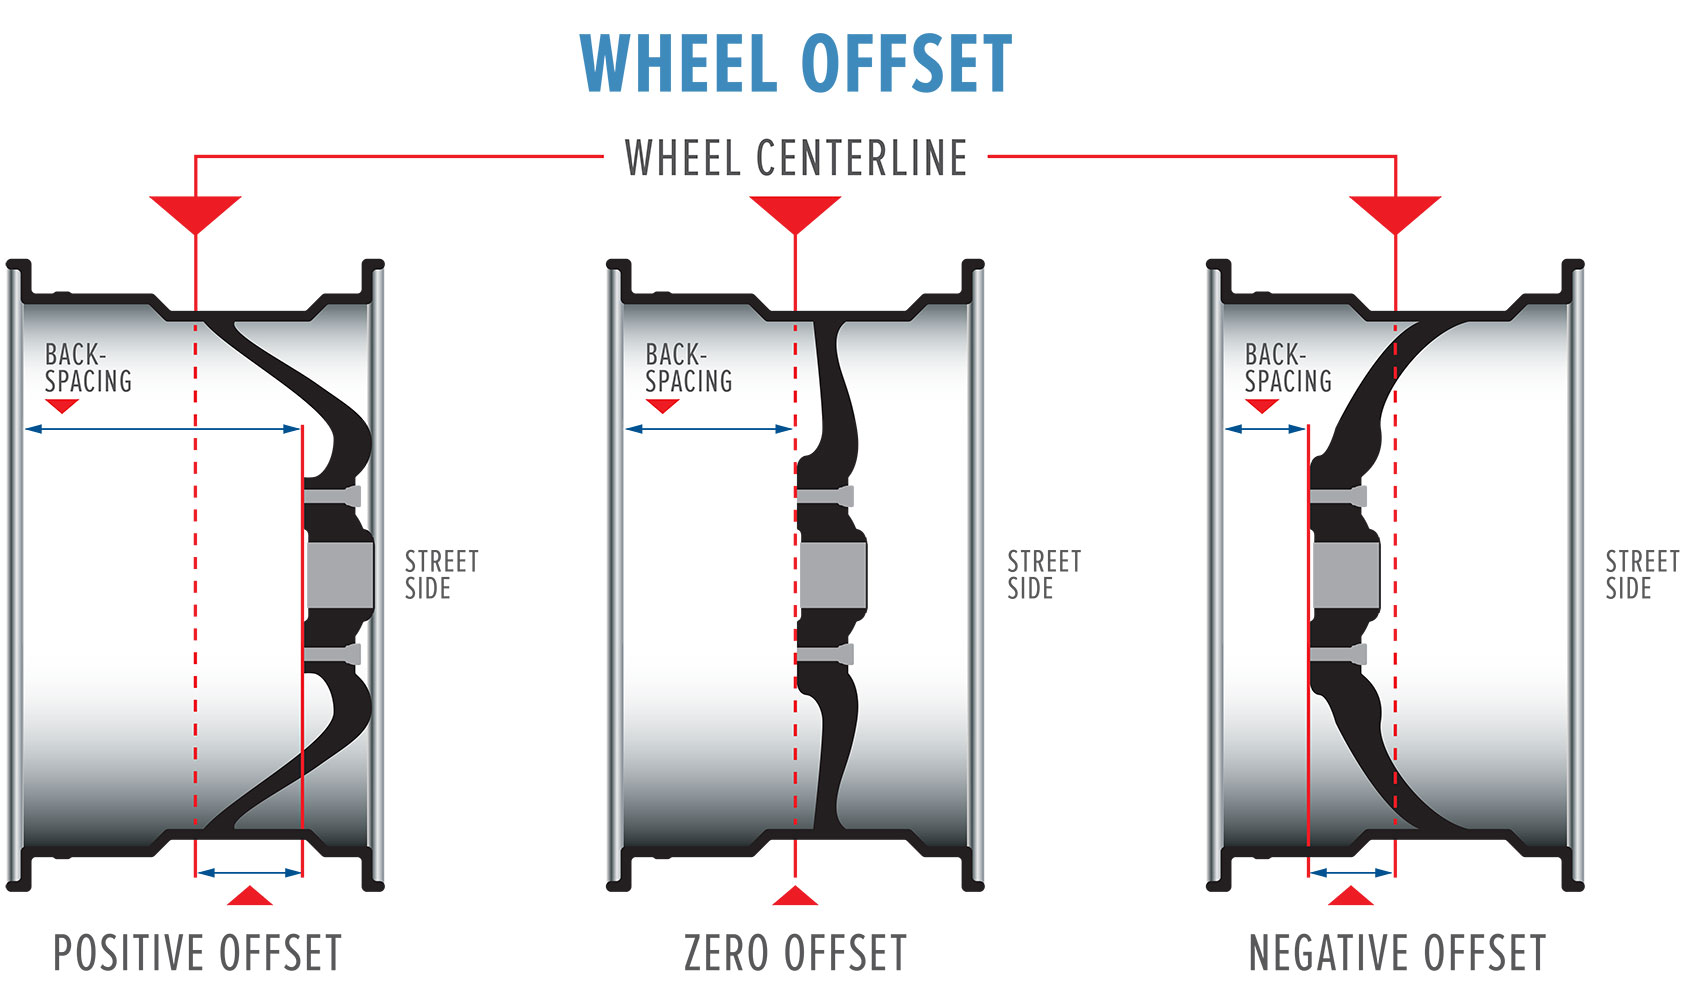 Wheel offset explained, with positive offset, zero offset and negative offset